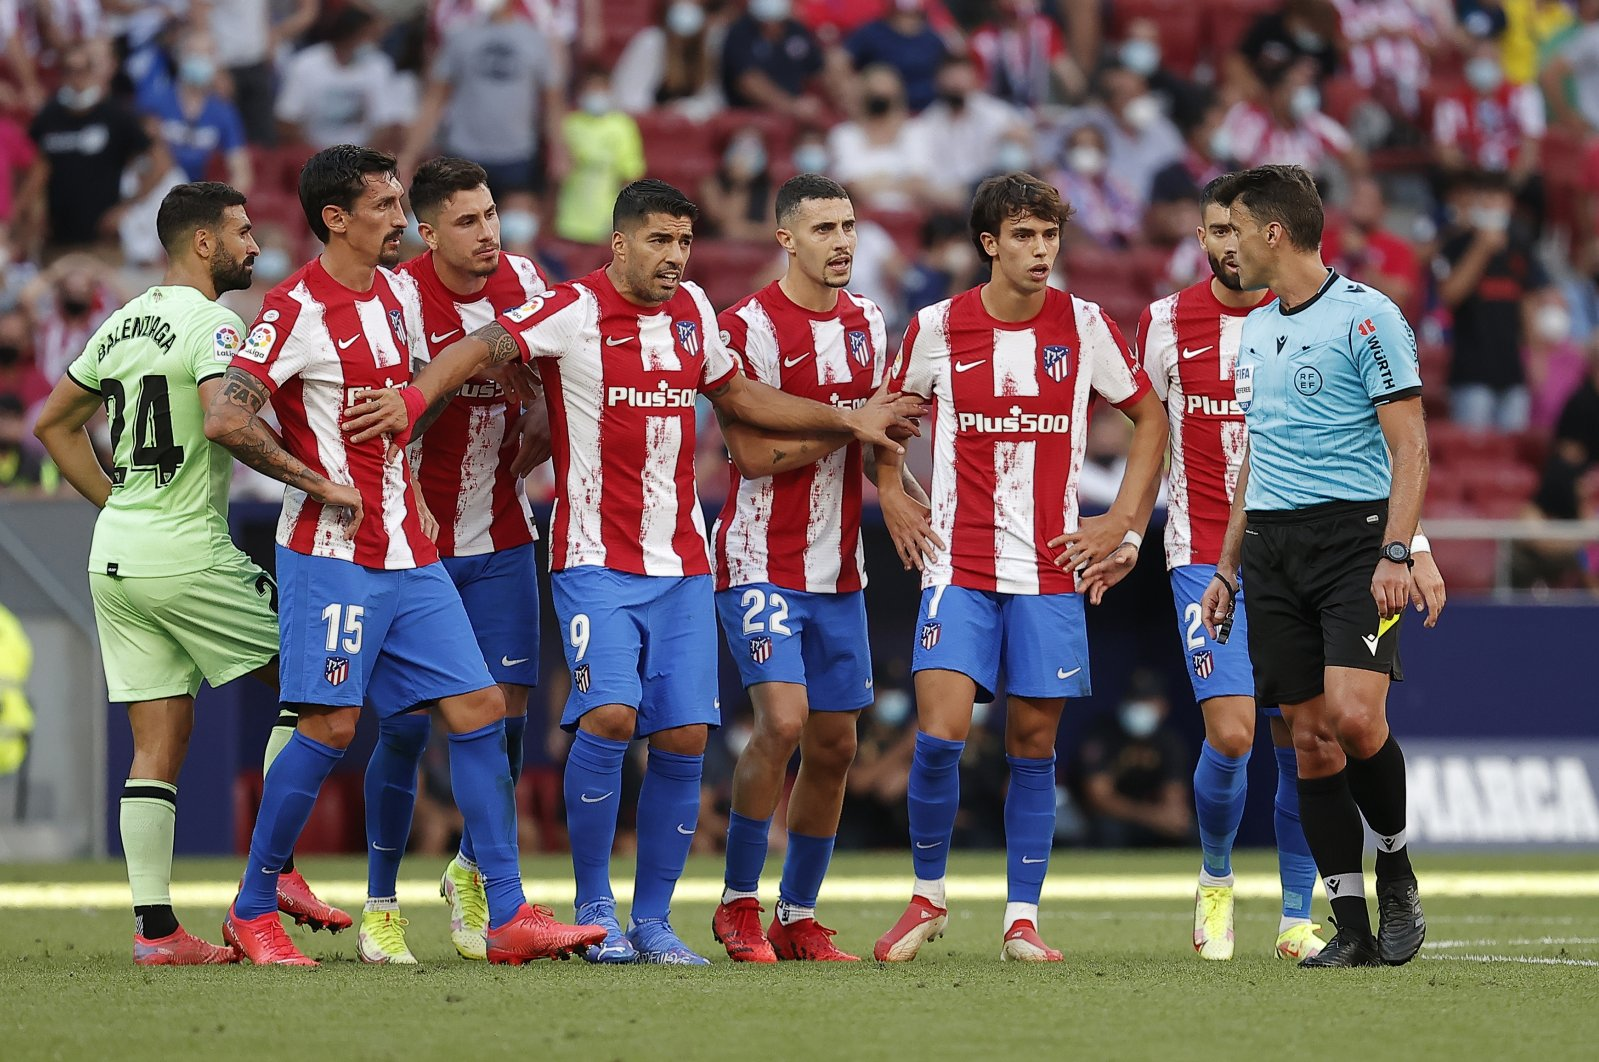 Atletico Madrid players protest a decision by the referee in a La Liga match against Athletic Bilbao, Madrid, Spain, Sept. 18, 2021. (AA Photo)